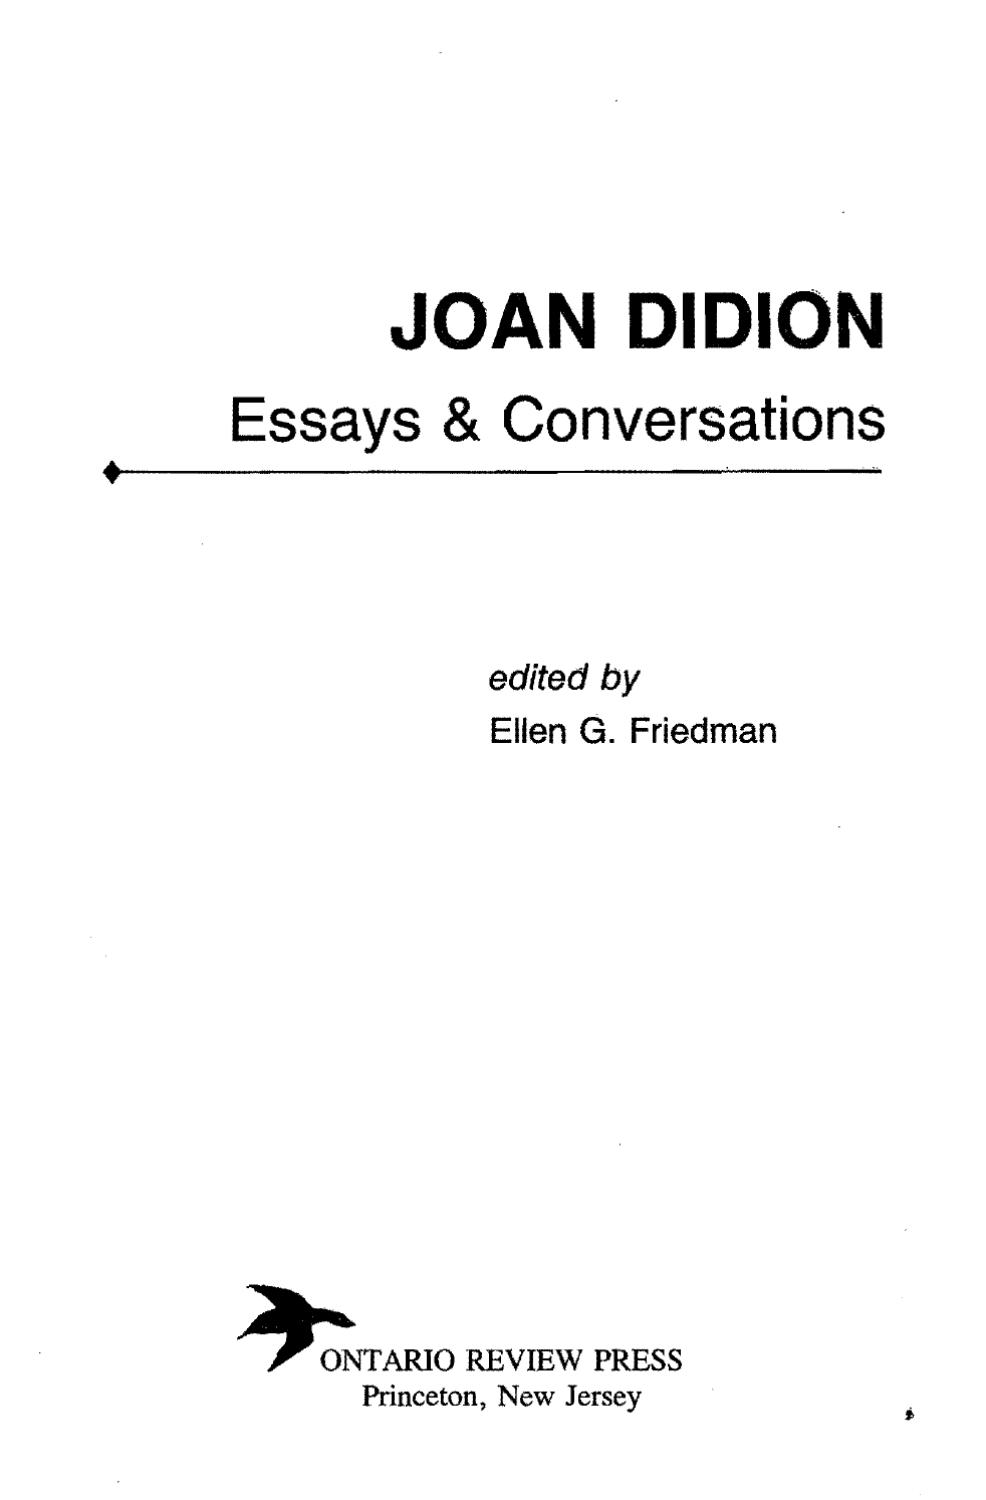 017 Essay Example Page 1 Joan Didion Singular Essays On Santa Ana Winds Collections Full